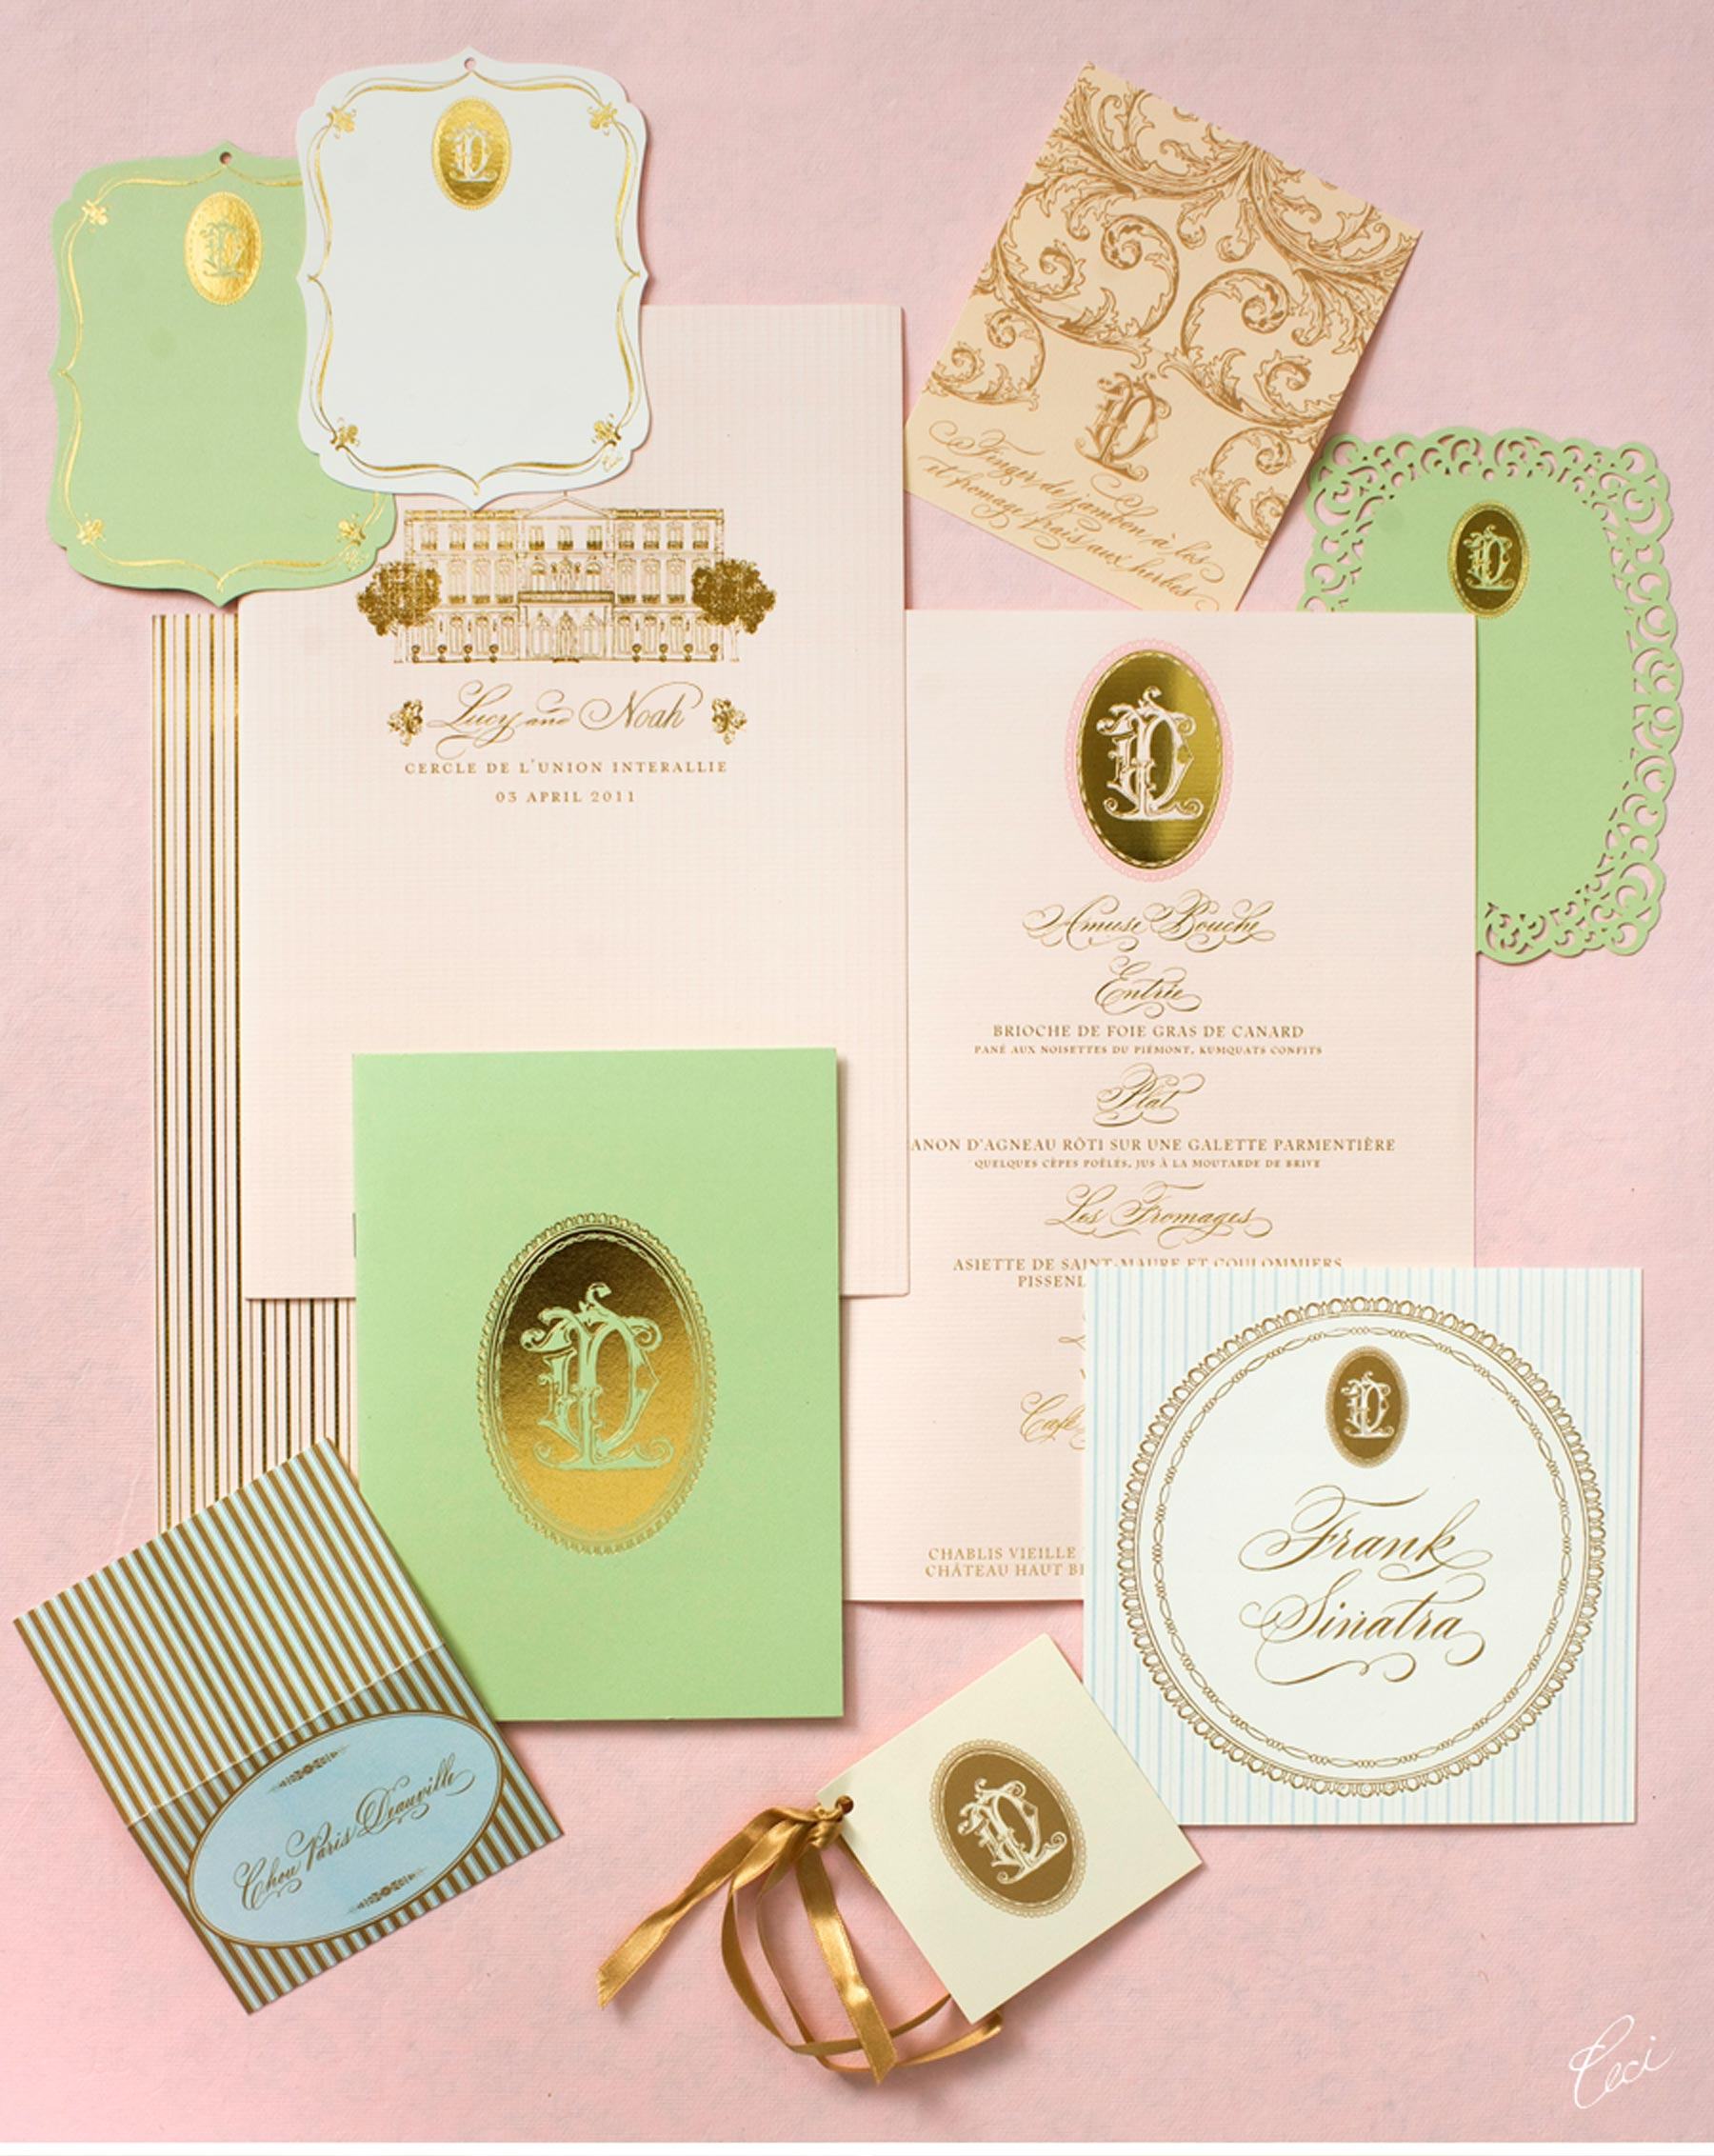 Luxury Wedding Invitations by Ceci New York - Our Muse - Romantic Parisian Wedding - Be inspired by Lucy & David's romantic Parisian wedding - wedding, escort cards, programs, menus, signs, foil printing, digital printing, hand calligraphy, laser cut printing, die cutting